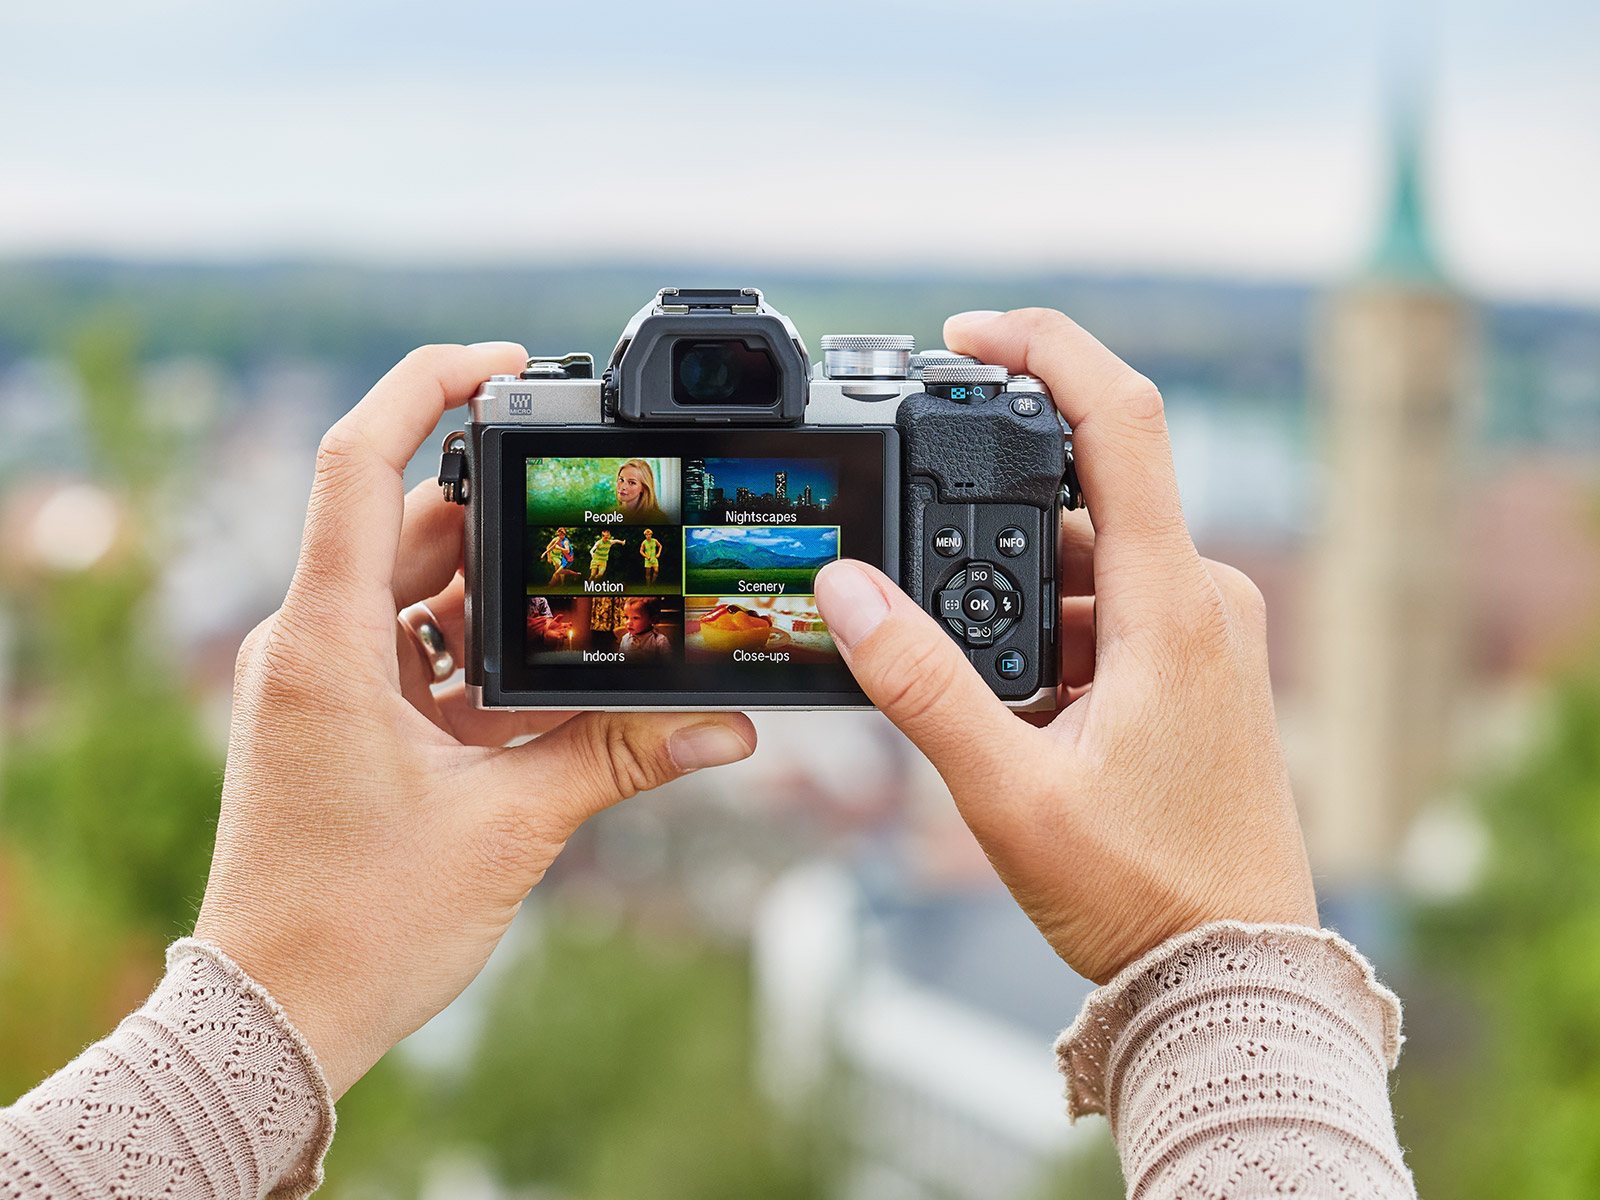 Easy shooting scenes system on the OM-D E-M10 mark IV